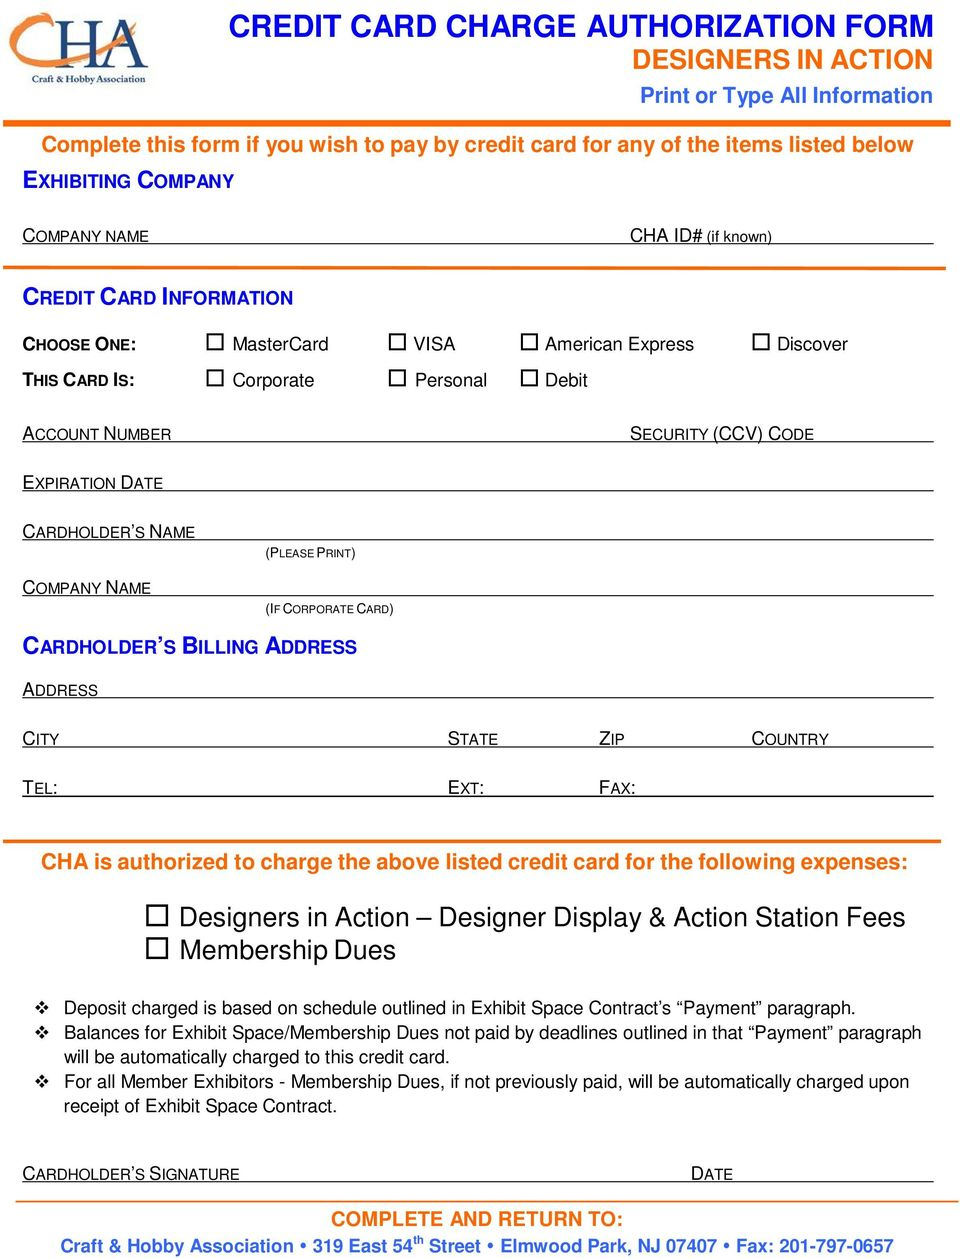 CARDHOLDER S NAME COMPANY NAME (PLEASE PRINT) (IF CORPORATE CARD) CARDHOLDER S BILLING ADDRESS ADDRESS CITY STATE ZIP COUNTRY TEL: EXT: FAX: CHA is authorized to charge the above listed credit card